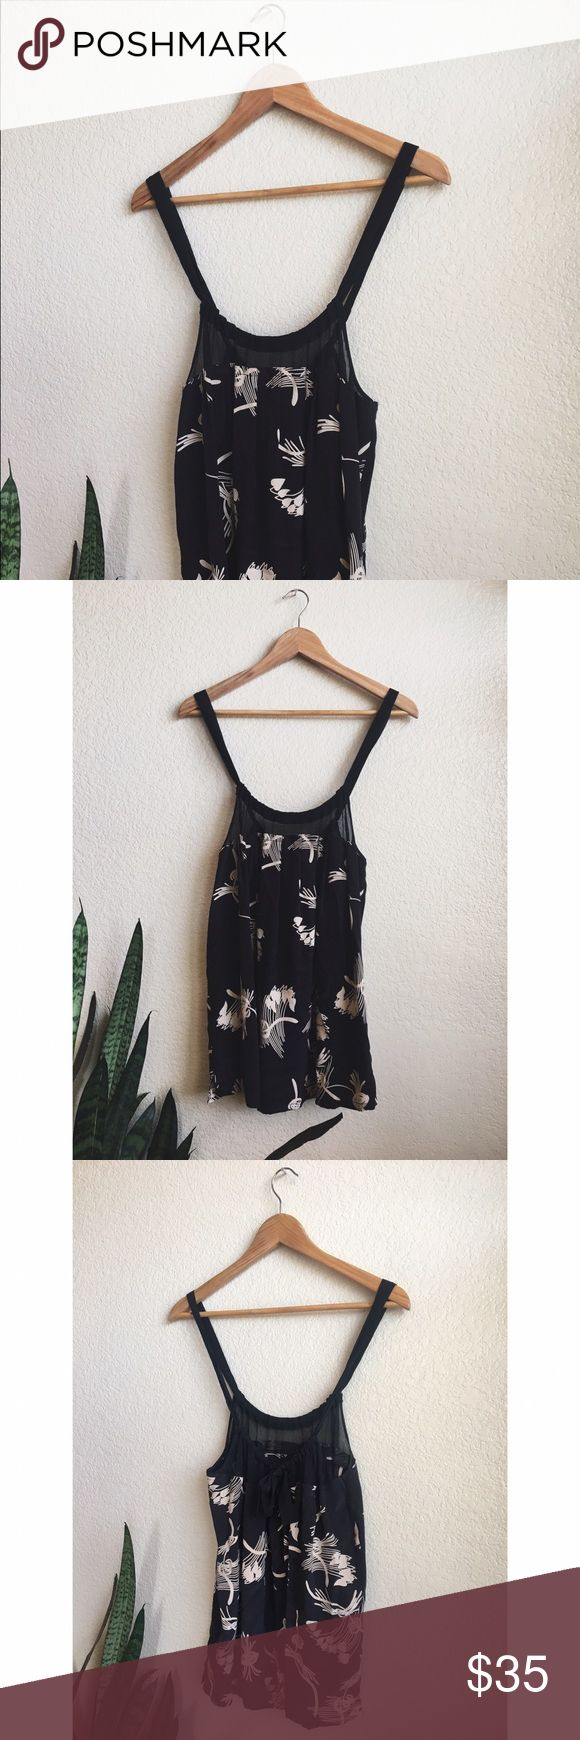 JOIE silk tank top black and white Joie tank top. 100% silk w modern floral-esqe pattern. bow accent. excellent condition, barely worn. light wrinkling just from storage. comes from a clean, smoke-free, and loving home. Joie Tops